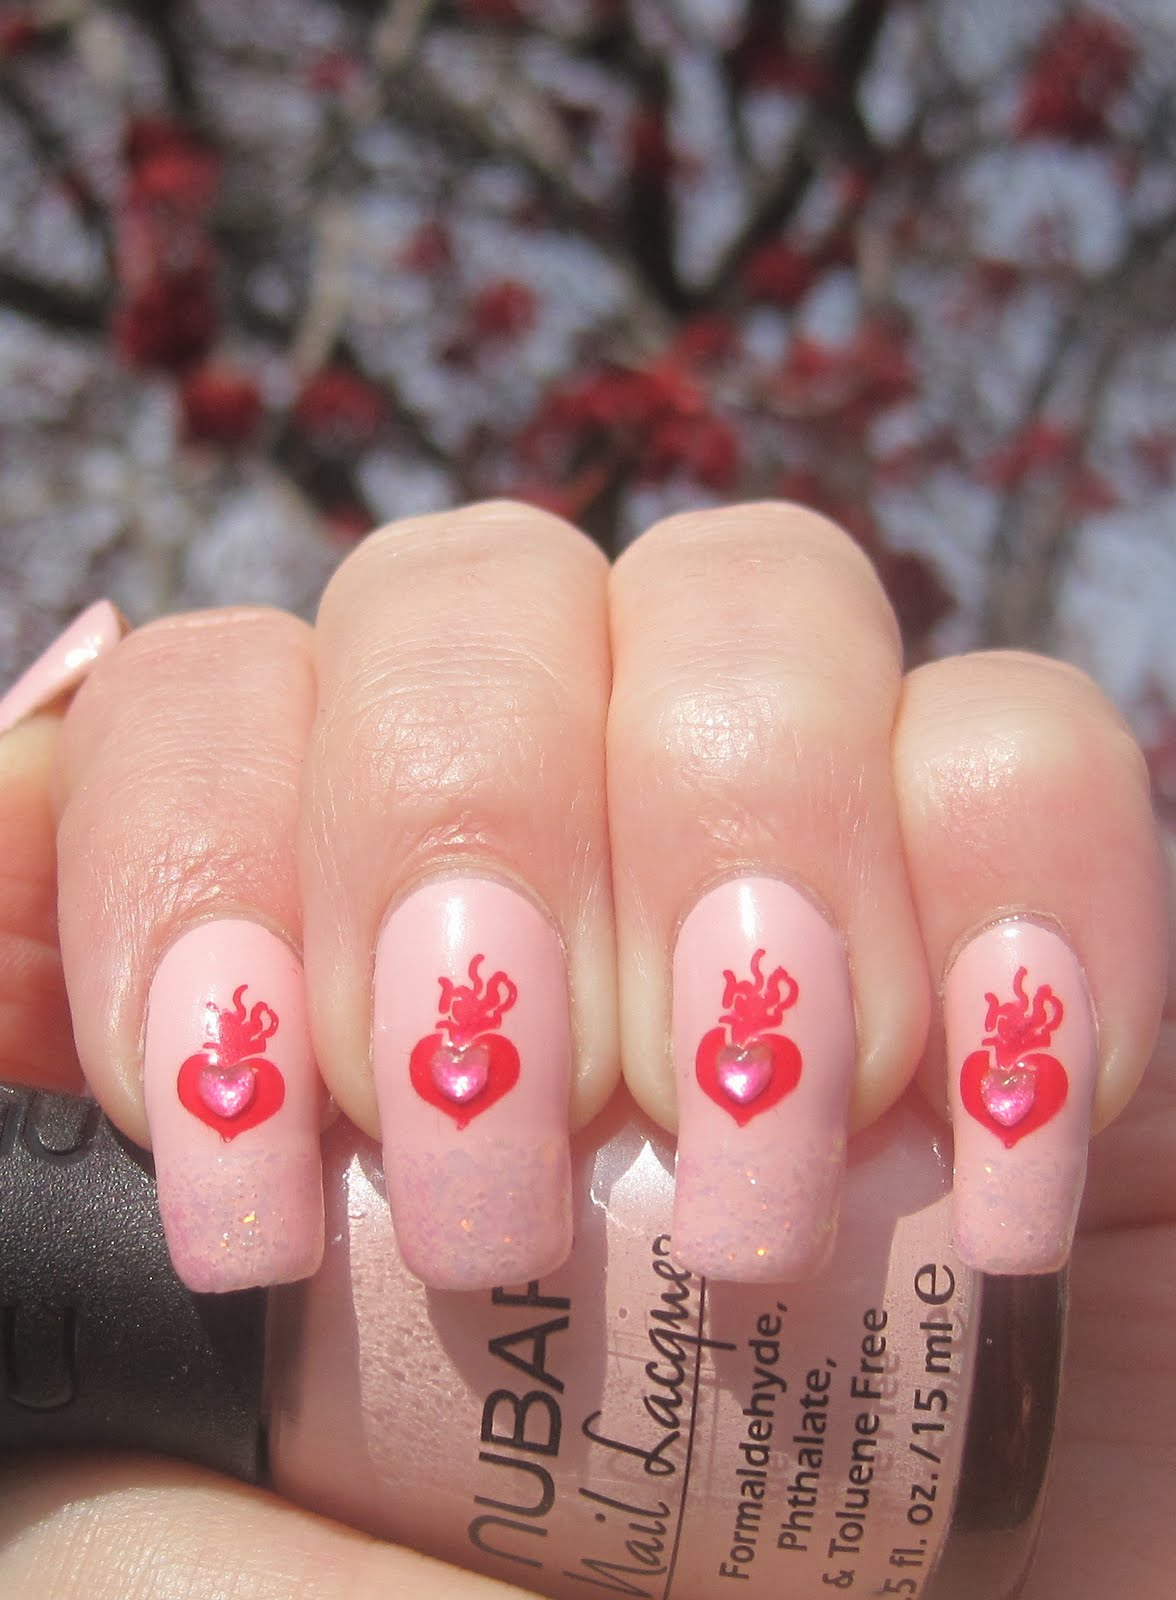 Painted Lady Fingers Flaming Hearts Nubar Pink Lily